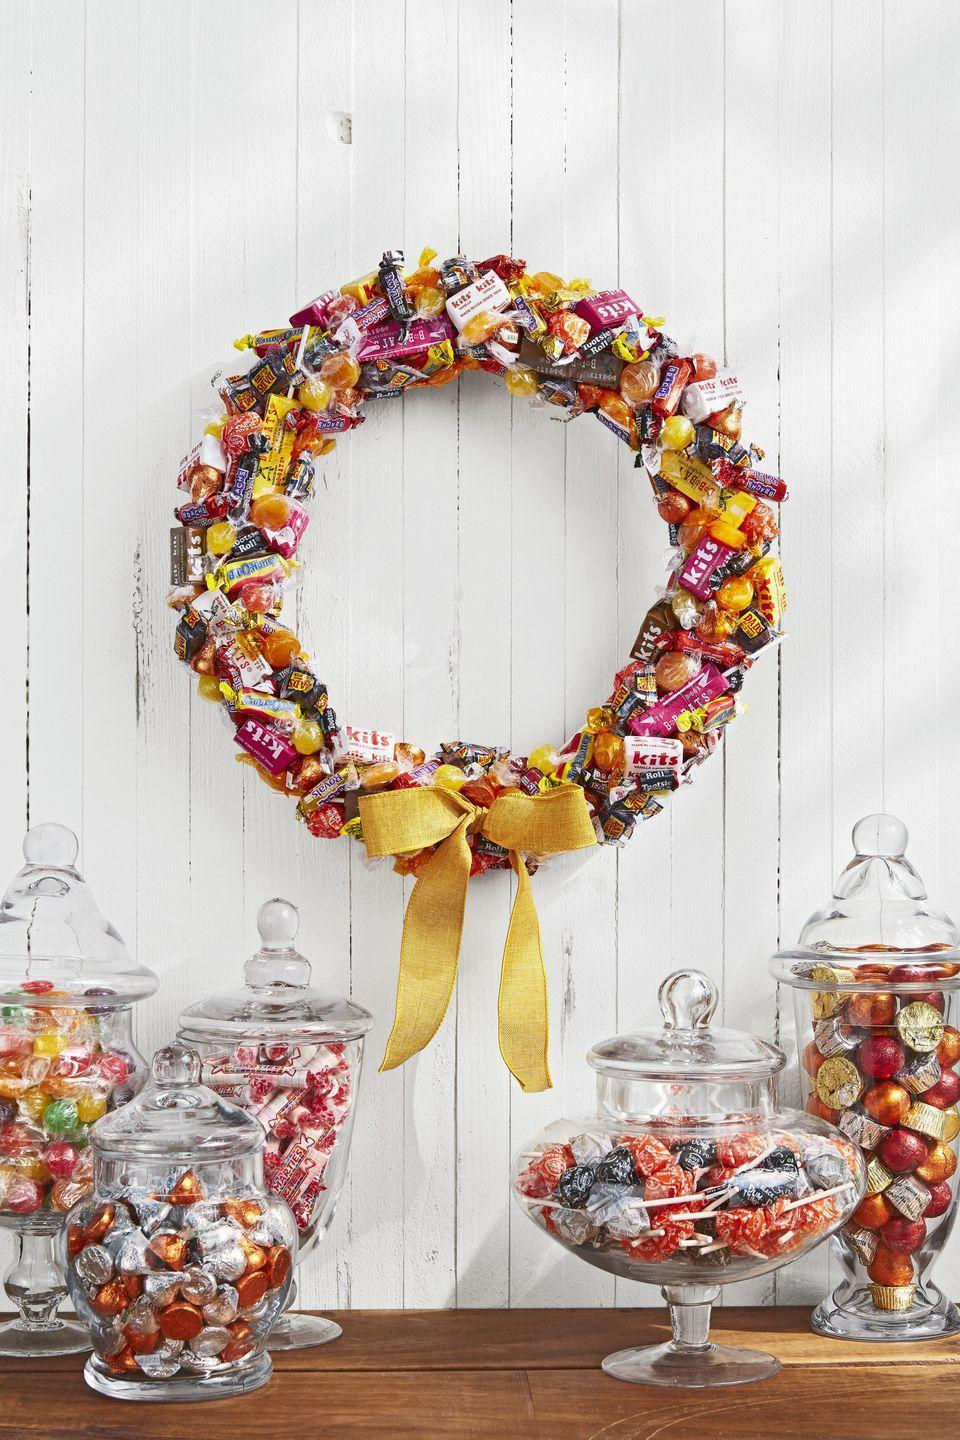 "<p>Sure, you may want to eat all the Halloween candy you can, but it makes for the perfect decoration too. Case in point? This very sweet wreath.</p><p><strong>Make the Candy Wreath: </strong>Gather an assortment of old-fashioned candies in autumnal shades such as yellow, orange, and magenta. Wrap a 14-inch foam wreath form in white ribbon. Attach candy with hot-glue, layering and overlapping as you go. Finish with a yellow burlap bow.</p><p><a class=""link rapid-noclick-resp"" href=""https://www.amazon.com/14-Smooth-Foam-Ruled-Wreath/dp/B01MR48RMZ/?tag=syn-yahoo-20&ascsubtag=%5Bartid%7C10050.g.22350299%5Bsrc%7Cyahoo-us"" rel=""nofollow noopener"" target=""_blank"" data-ylk=""slk:SHOP WREATH FORMS"">SHOP WREATH FORMS</a></p>"